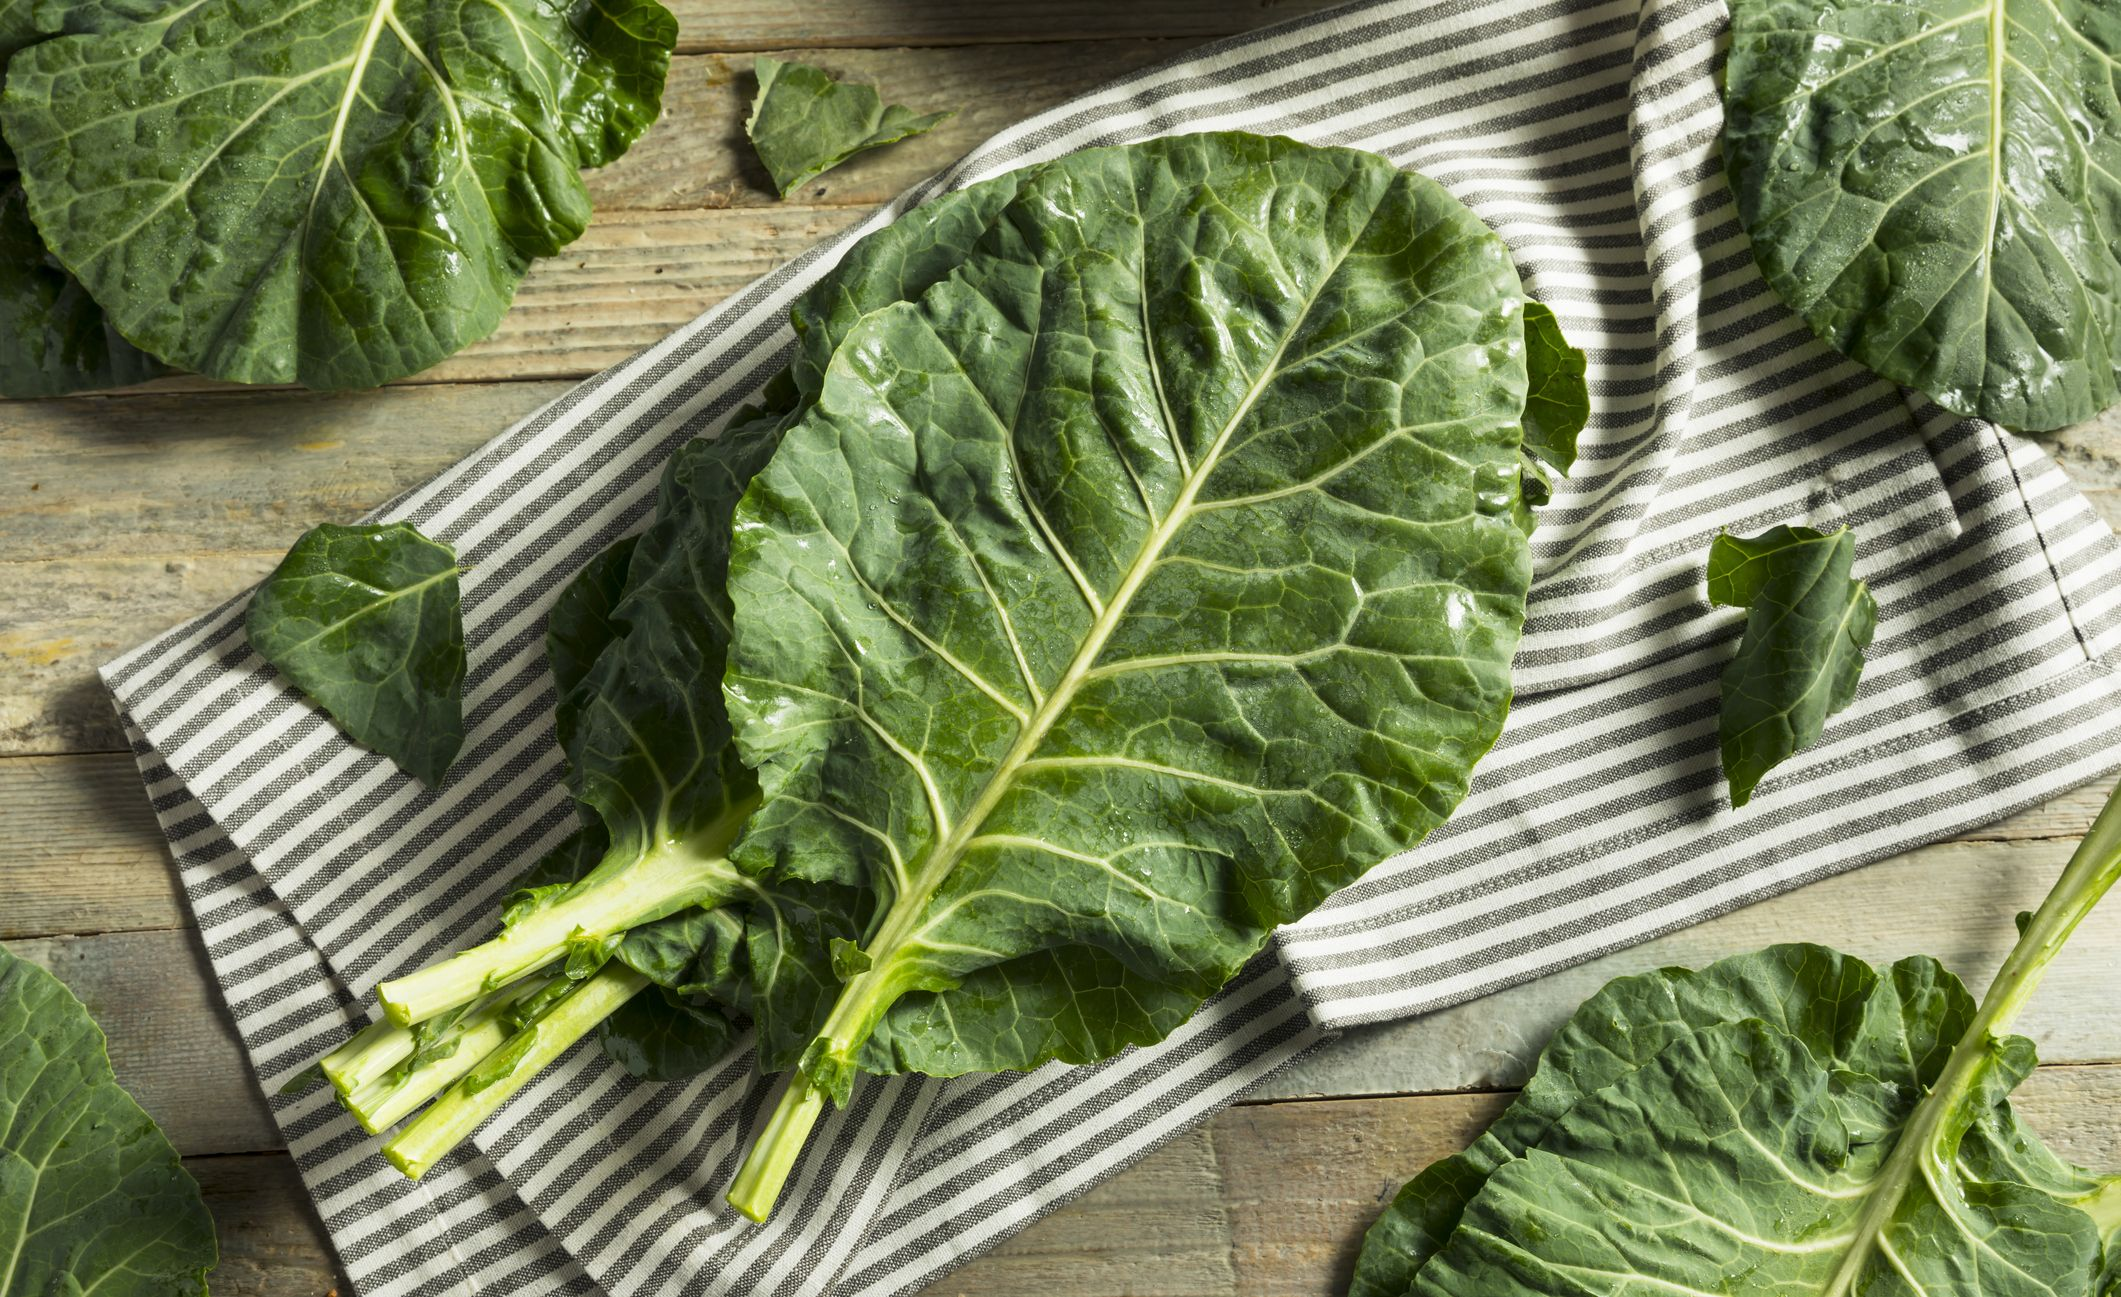 Raw Green Organic Collard Greens